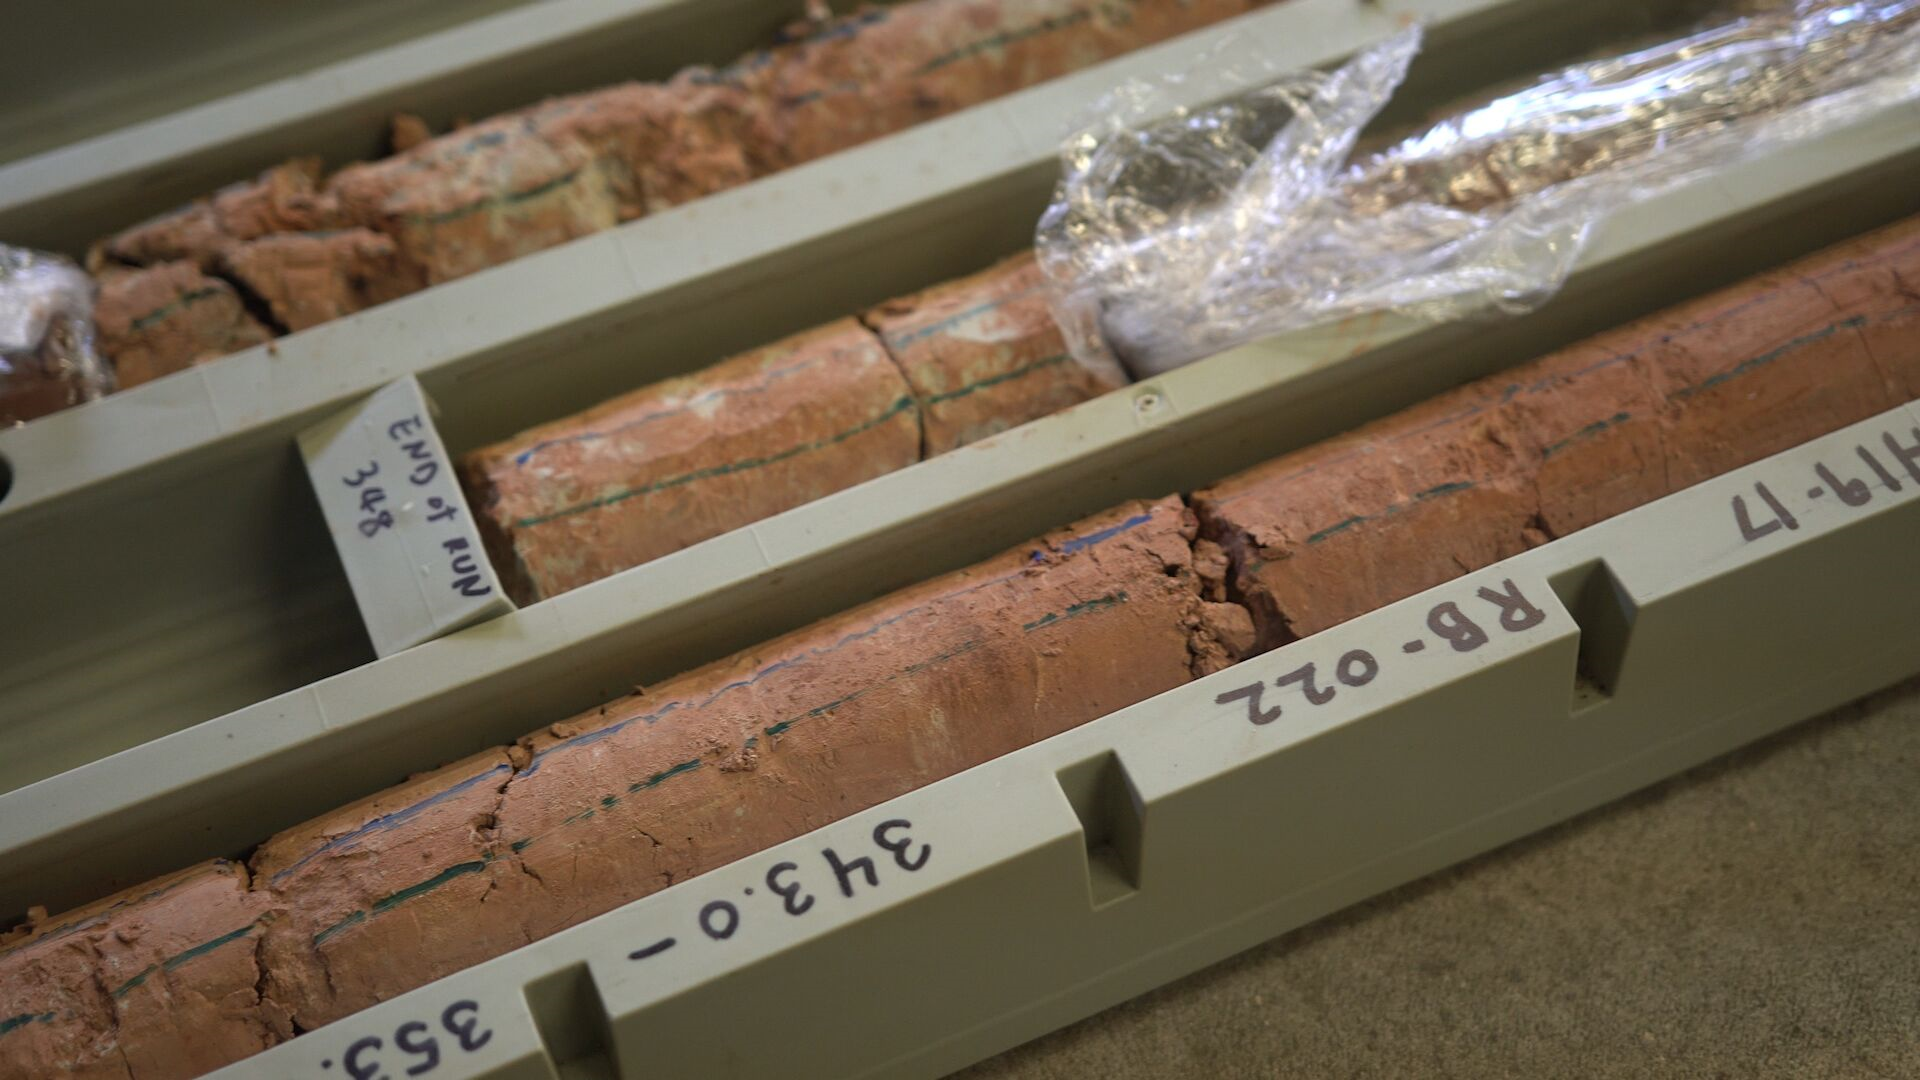 Detailed core samples in box